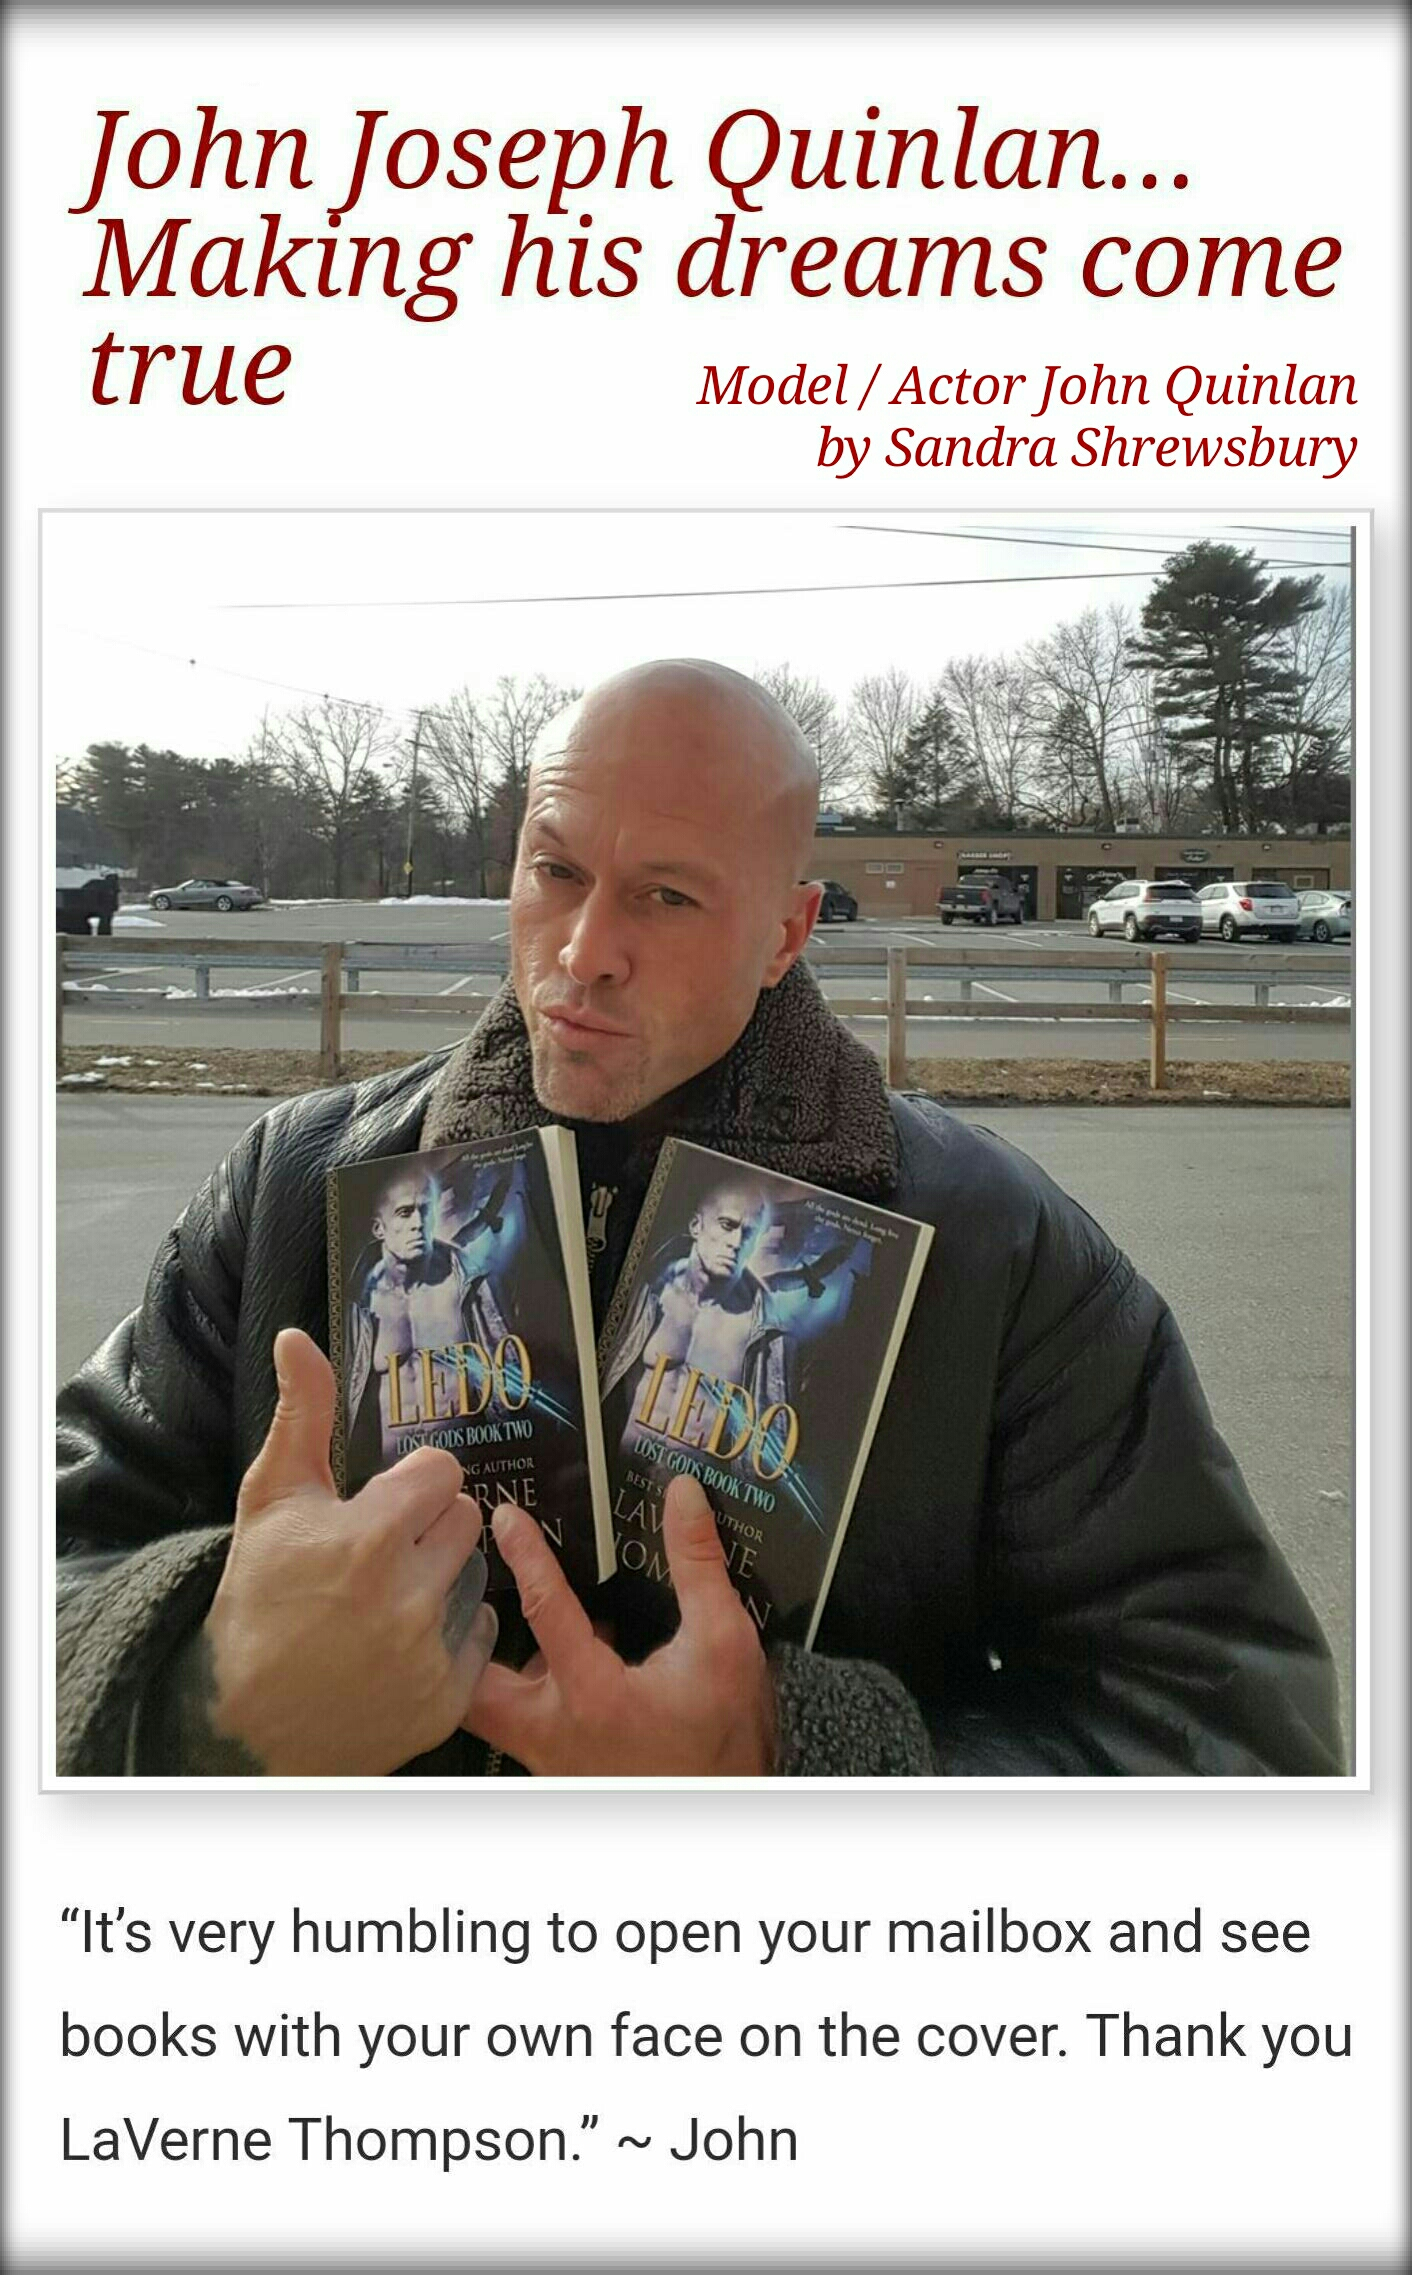 Celebrity Book Cover Model & Actor John Joseph Quinlan by Sandra Shrewsbury #JohnQuinlan